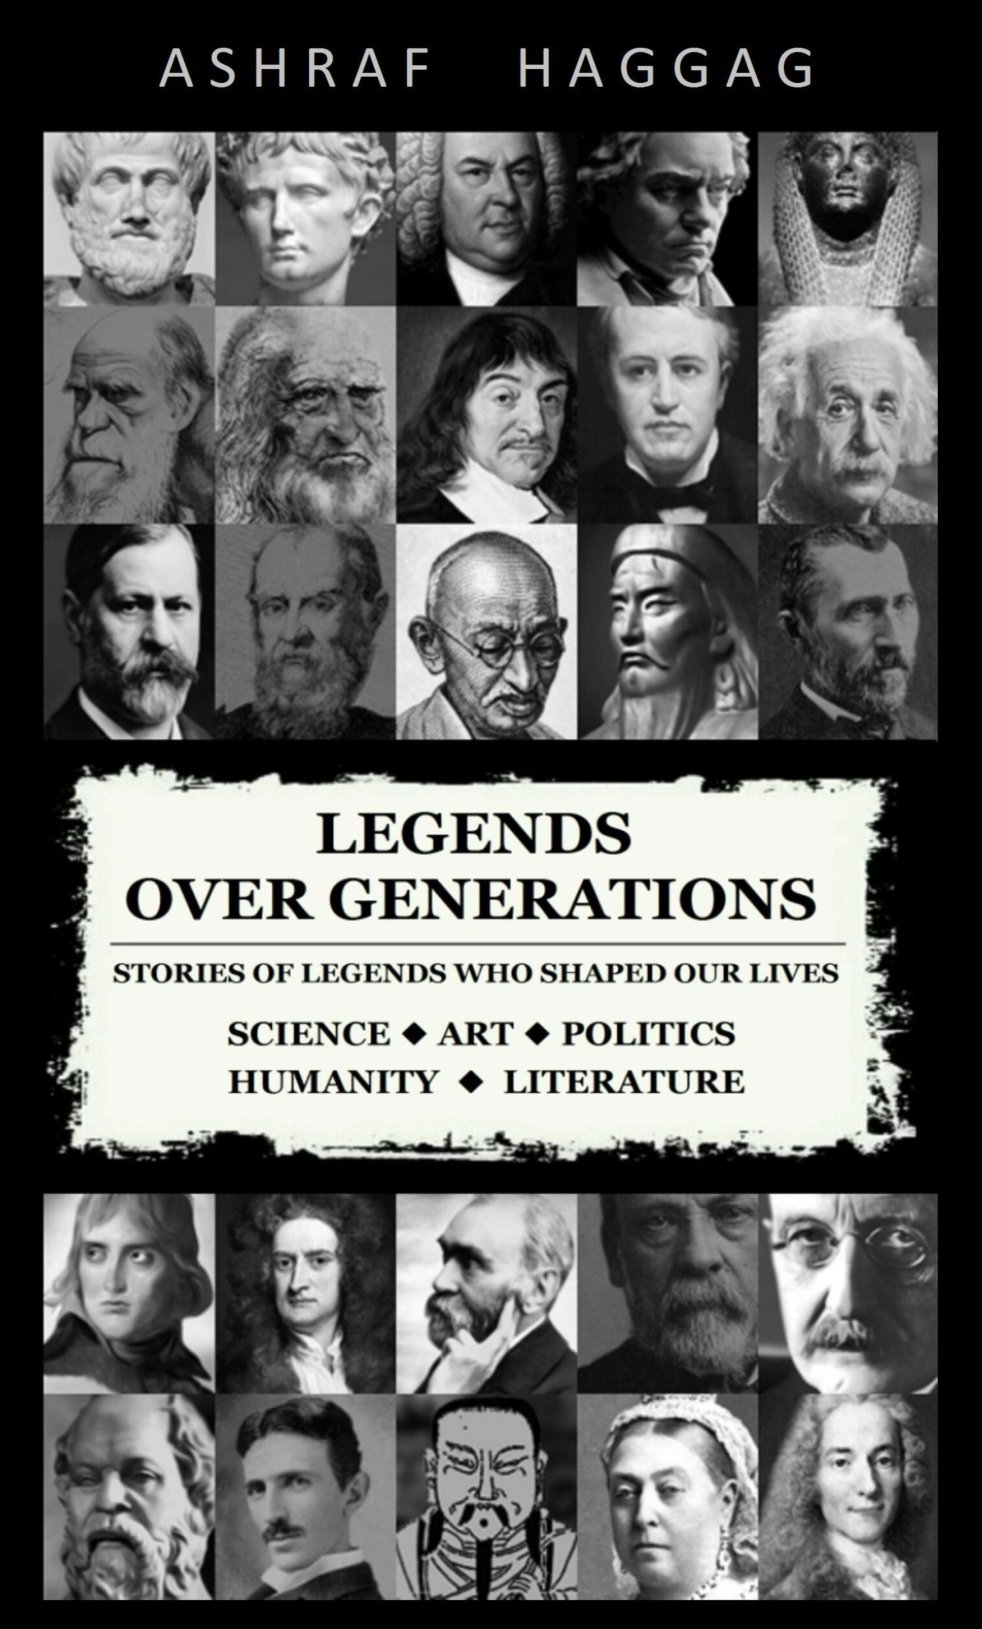 Legends Over Generations, Ashraf Haggag, Book Review, Bookish Fame, Khyati Gautam